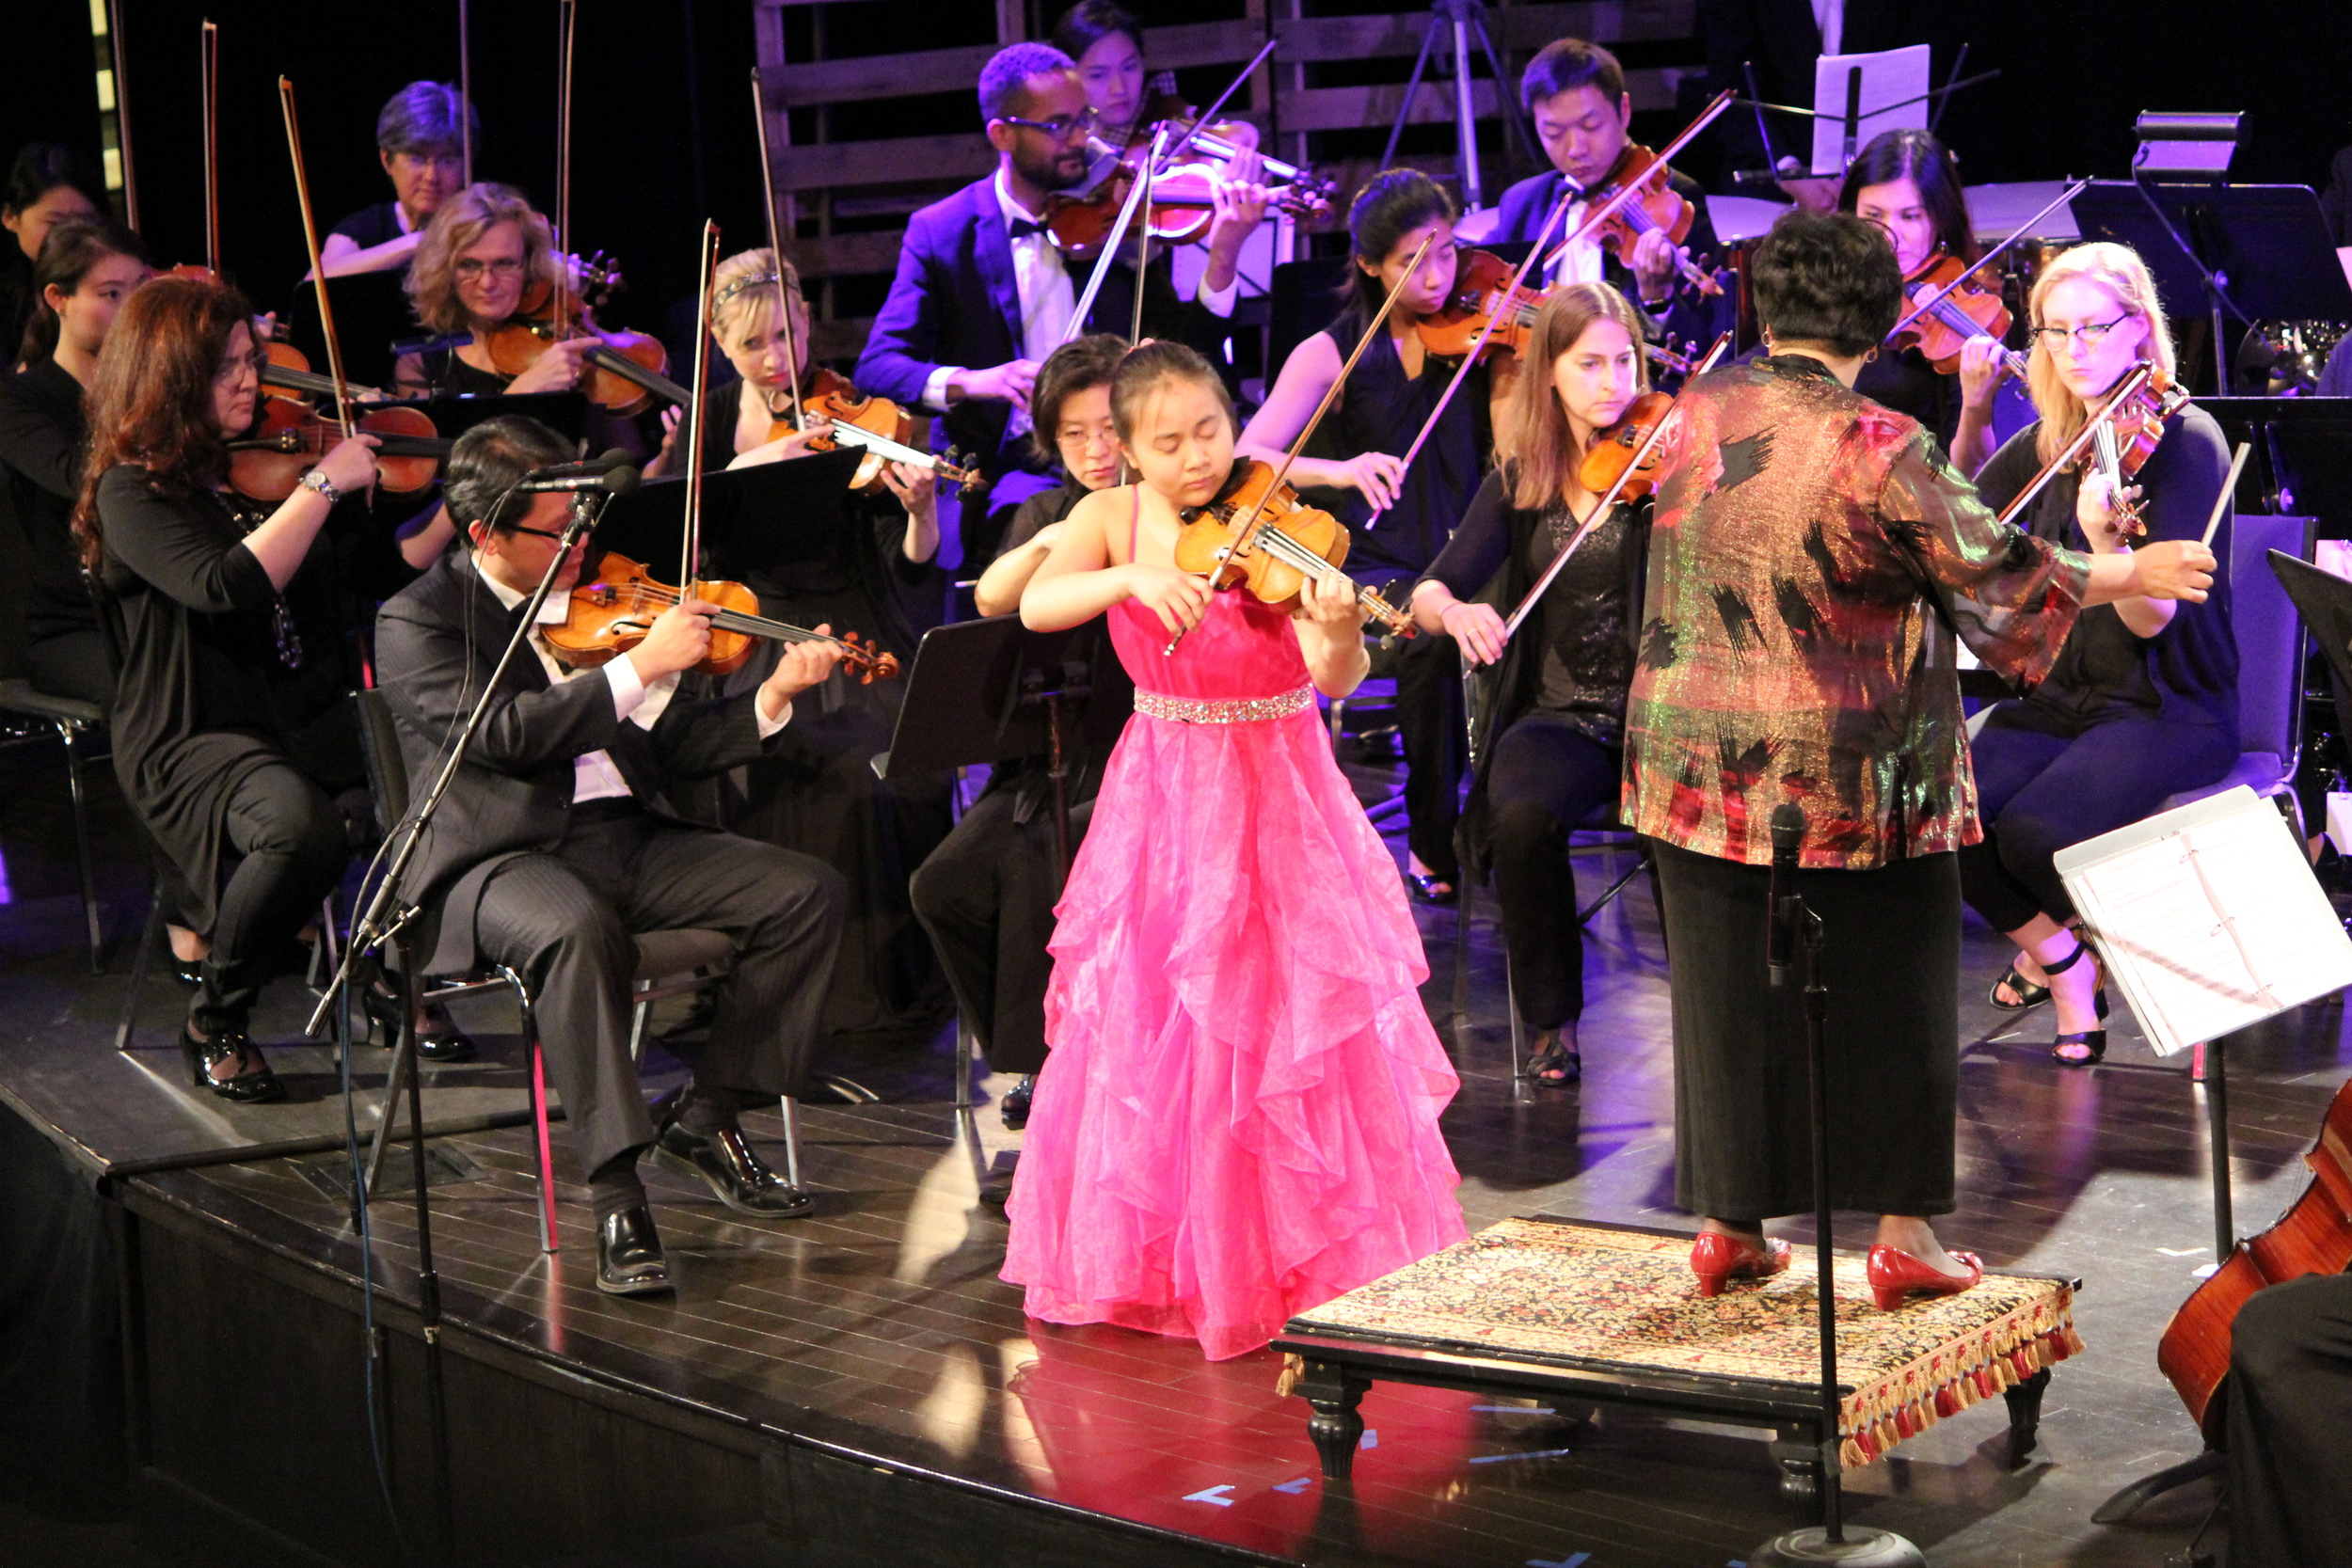 Sarah Ma astounds the audience with her young virtuosity